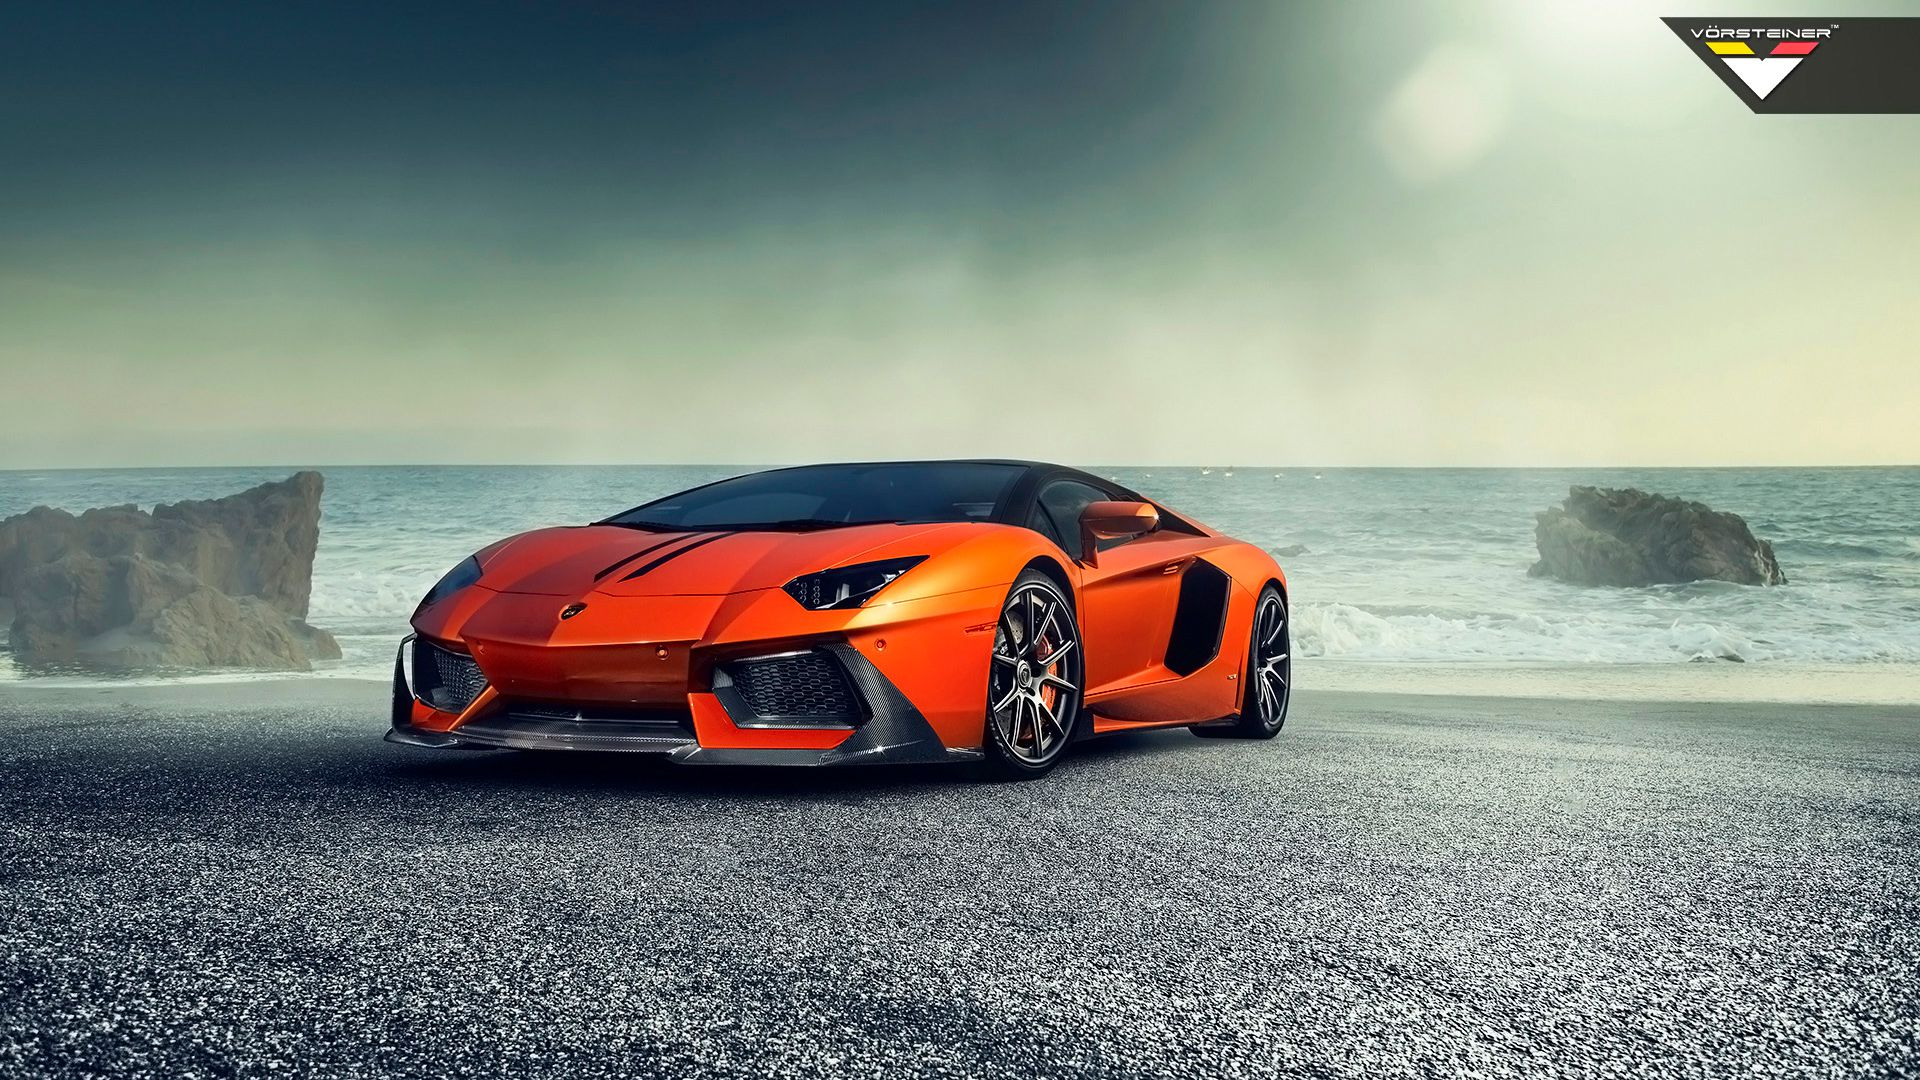 Pc Hd Car Wallpapers Free Download 30 Lamborghini Aventador Stylish Super Car Wallpaper